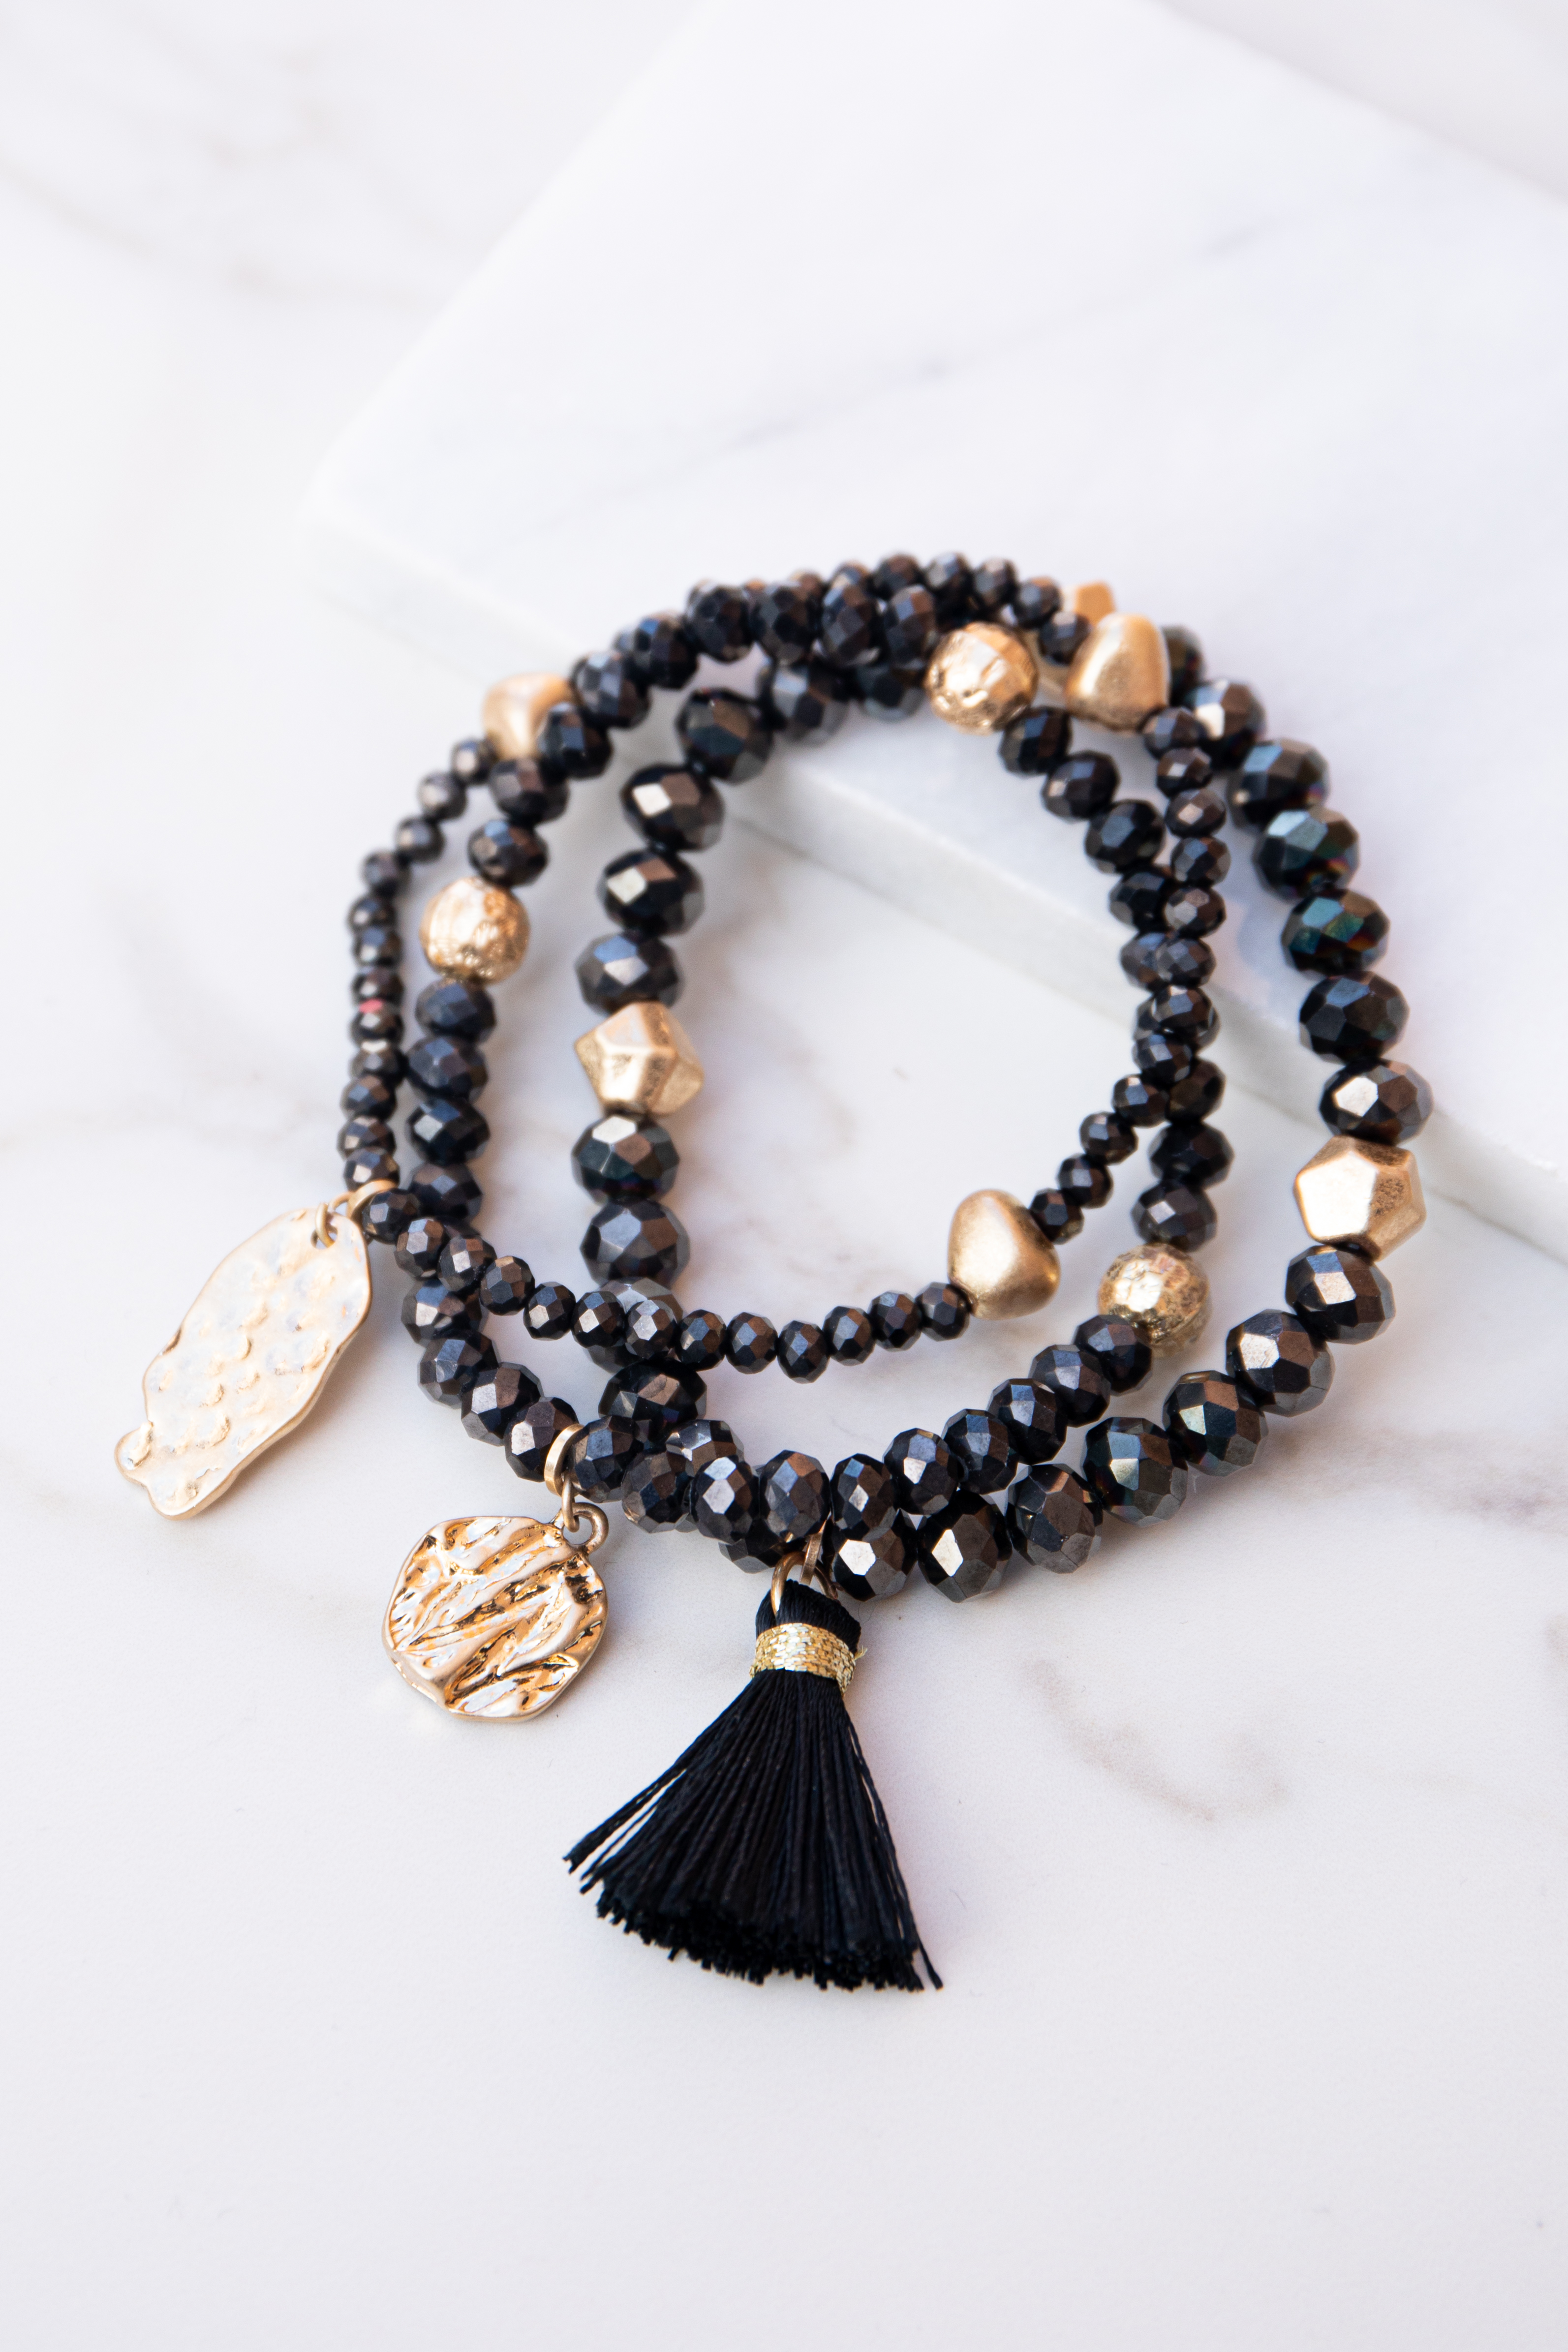 Black and Gold Beaded Bracelet Set with Tassel and Charms